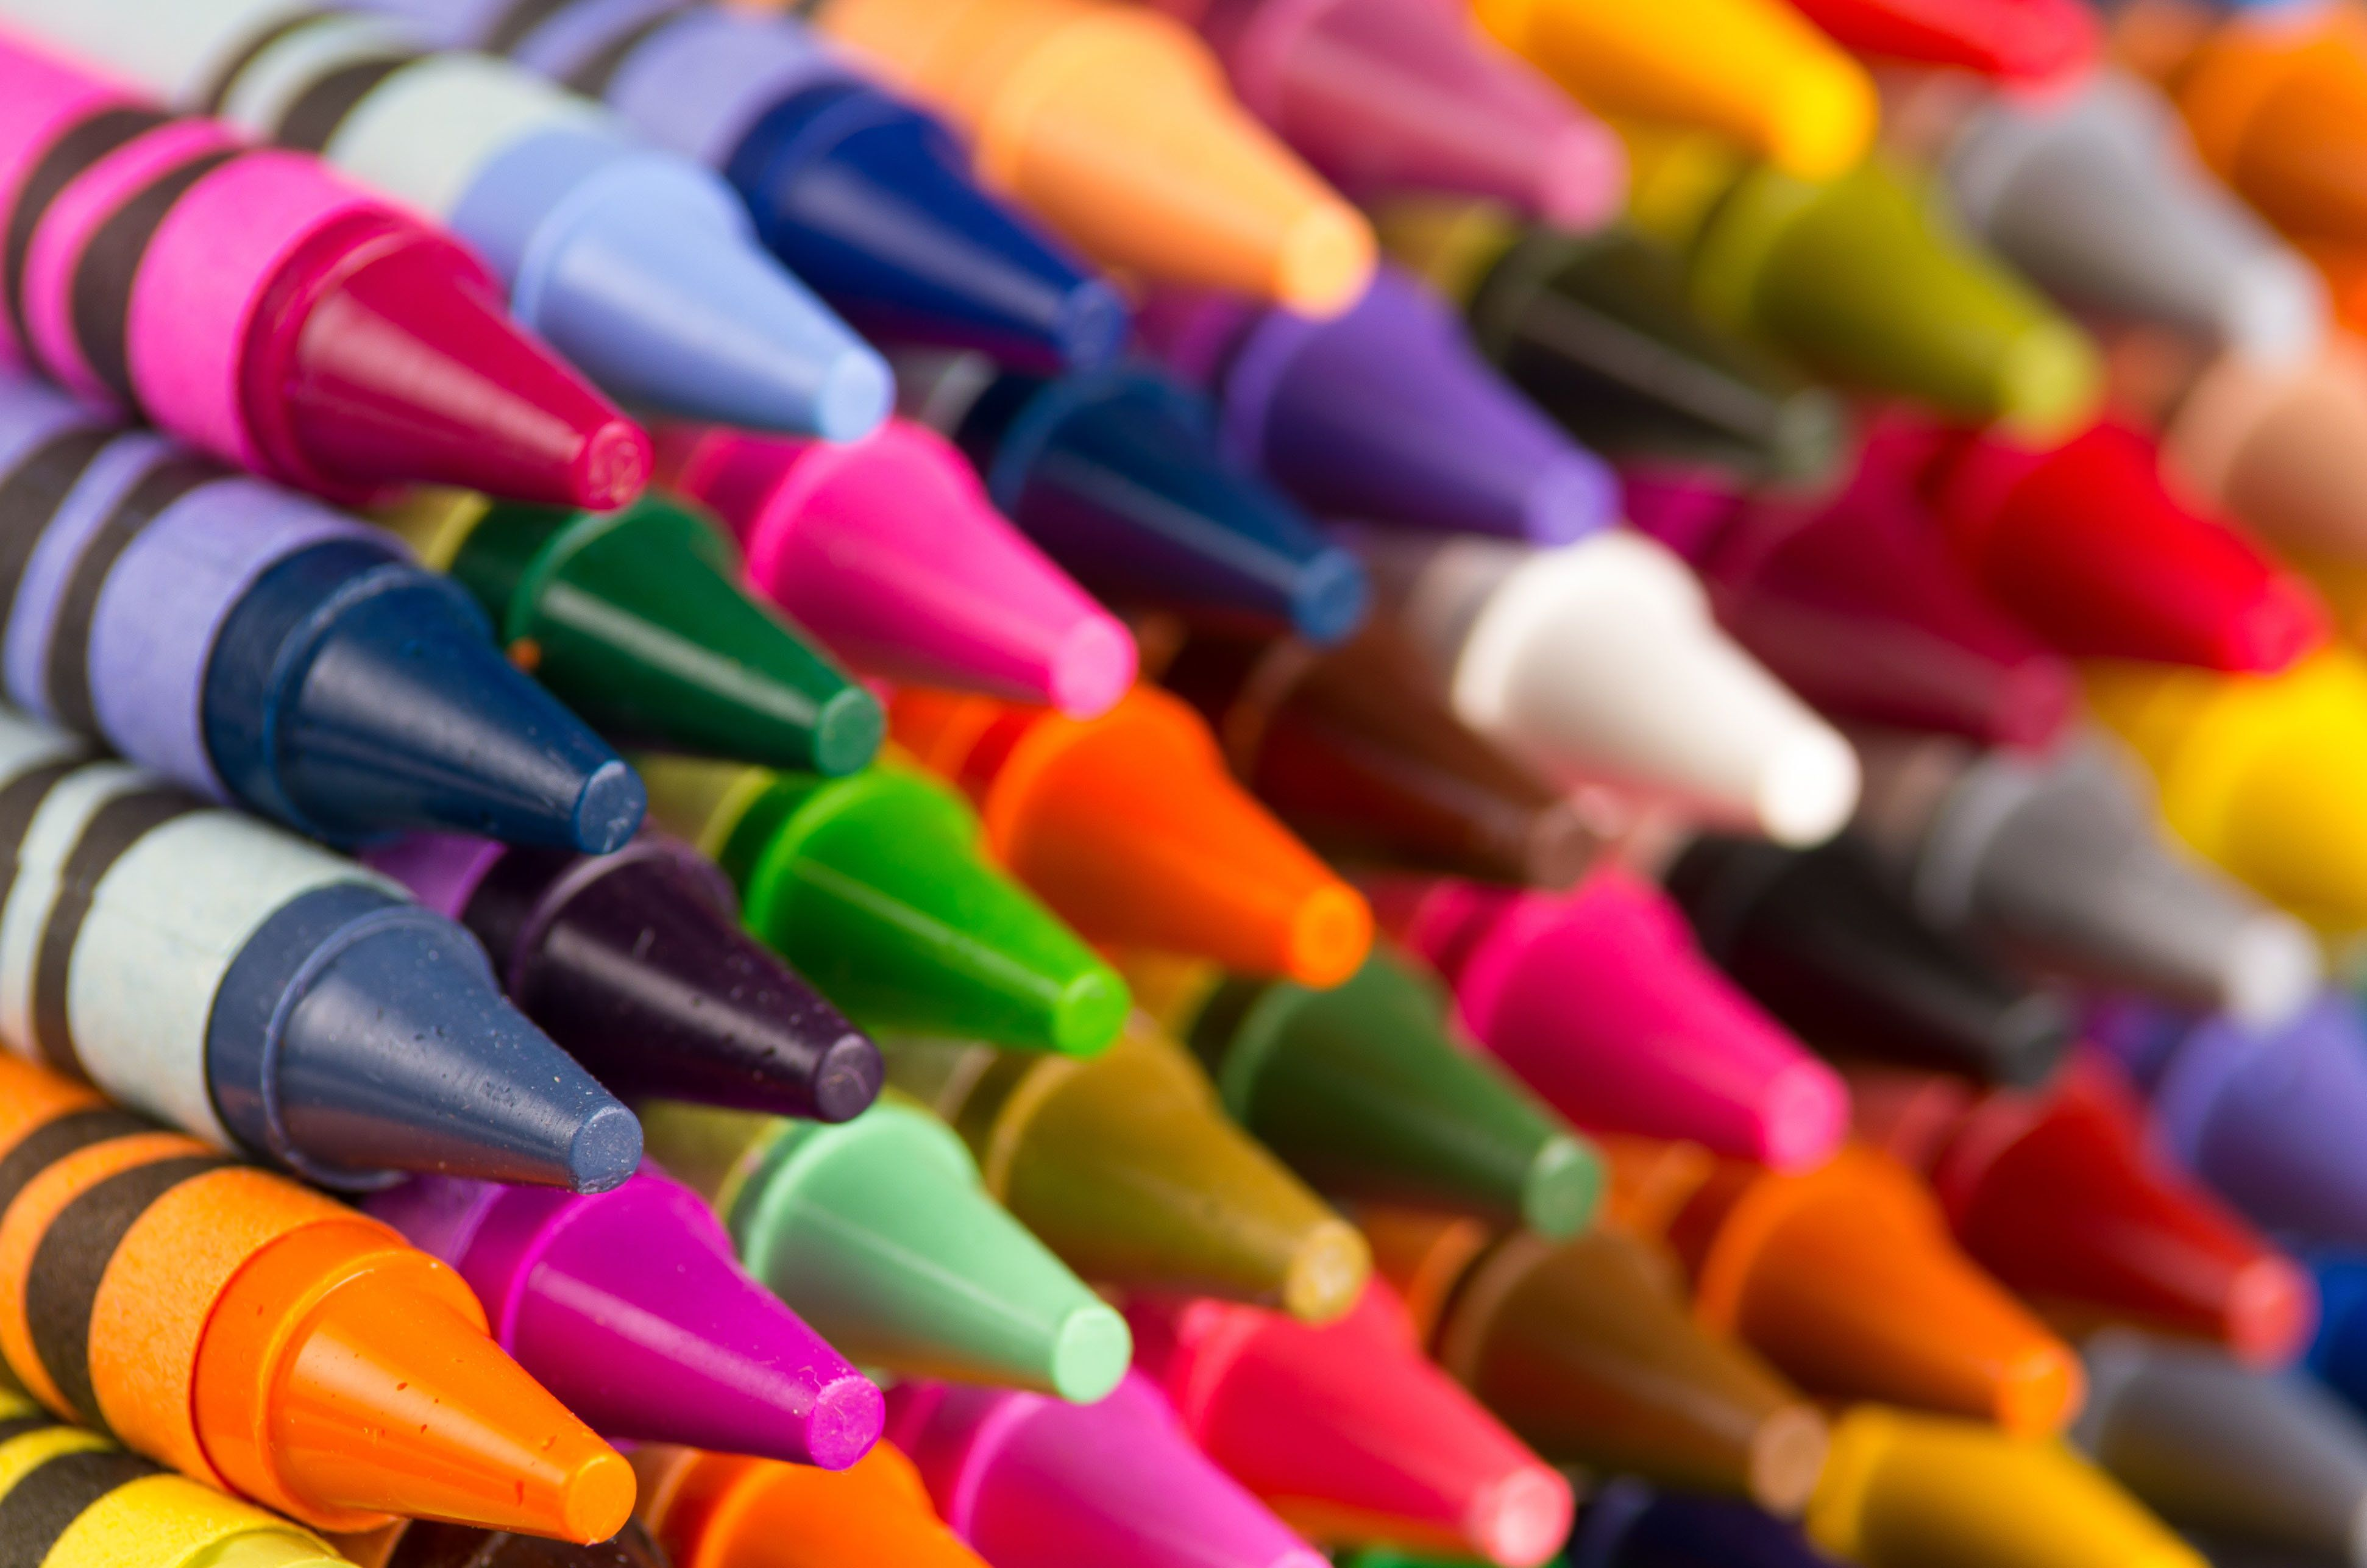 background of multicolored crayons organized in rows closeup